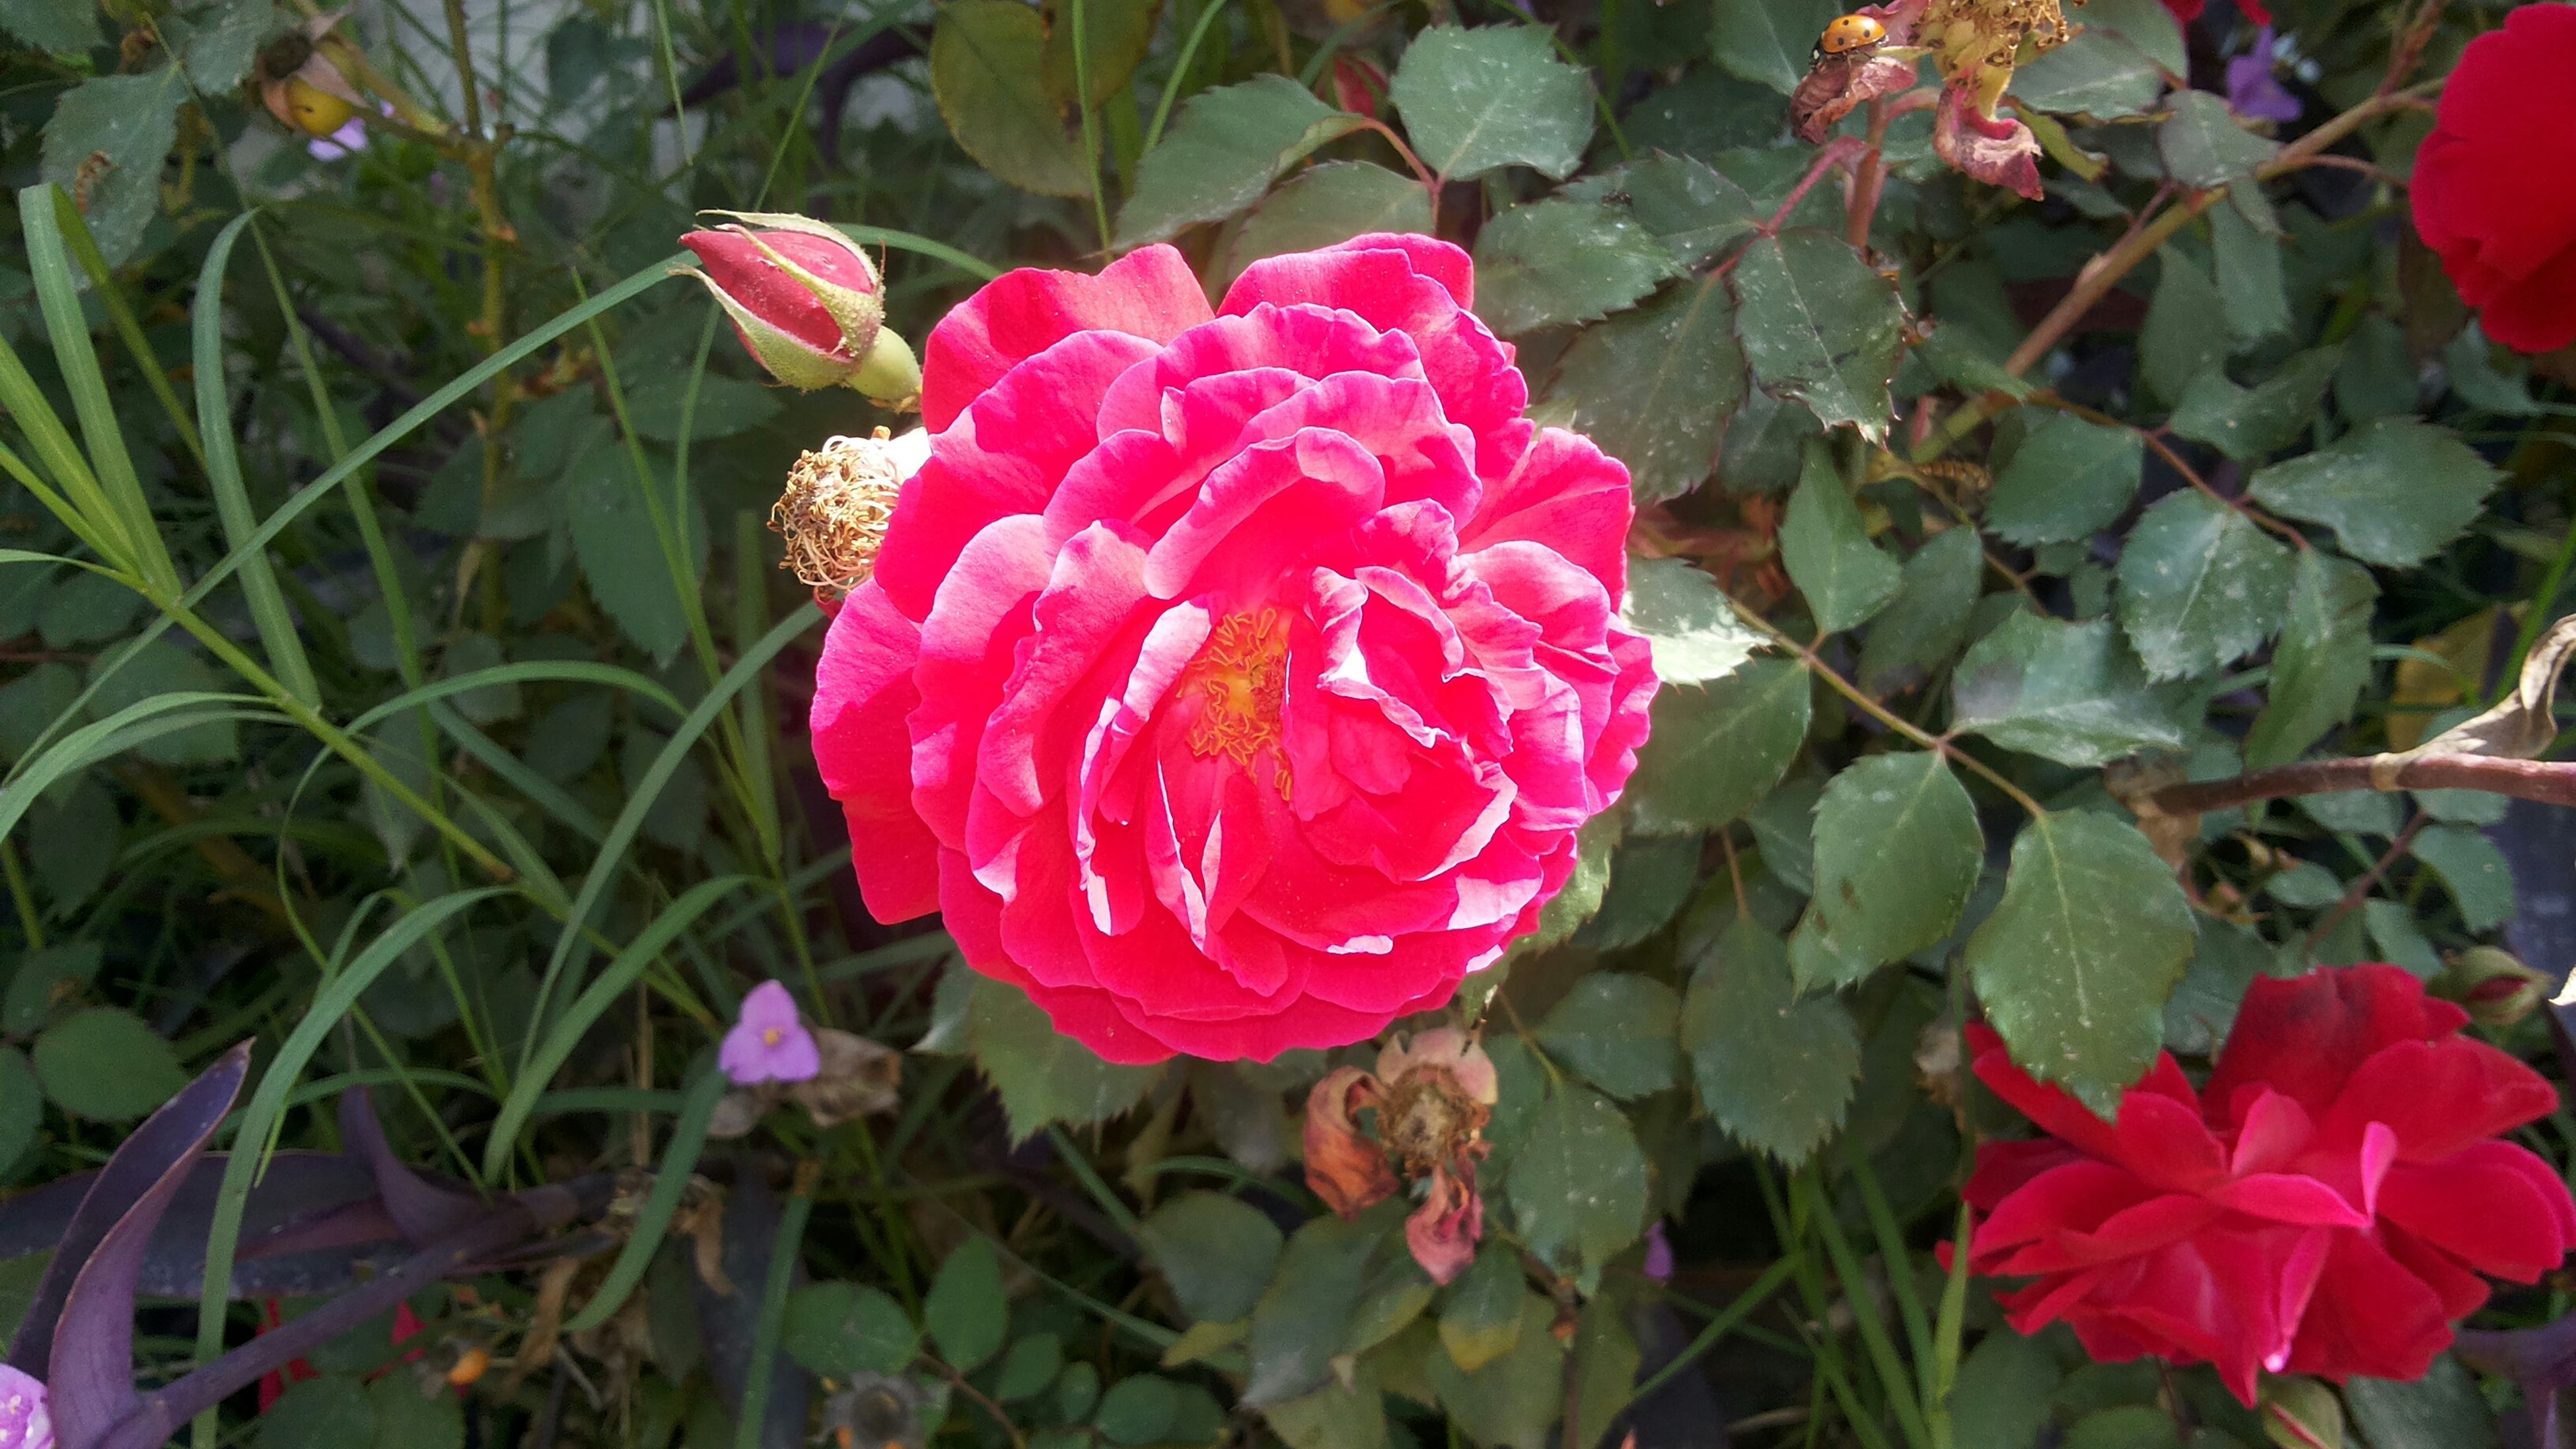 flower, freshness, petal, fragility, flower head, growth, beauty in nature, pink color, blooming, plant, rose - flower, leaf, nature, red, close-up, high angle view, in bloom, pink, park - man made space, focus on foreground